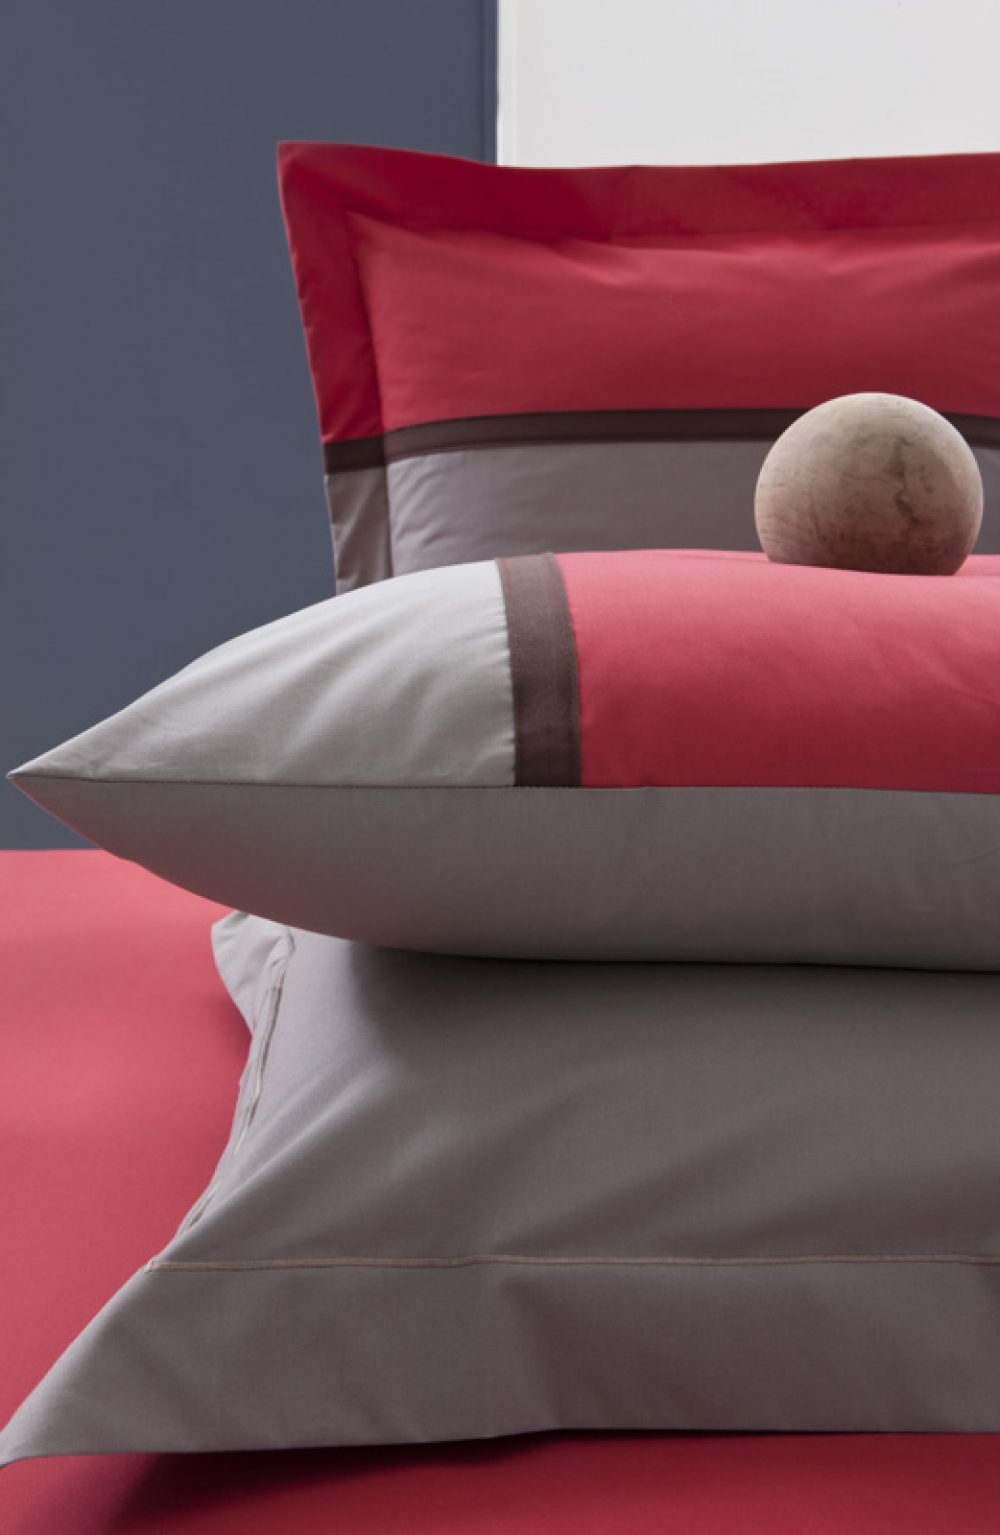 Pillow Case - Moi et Toi Taupe/Red-0